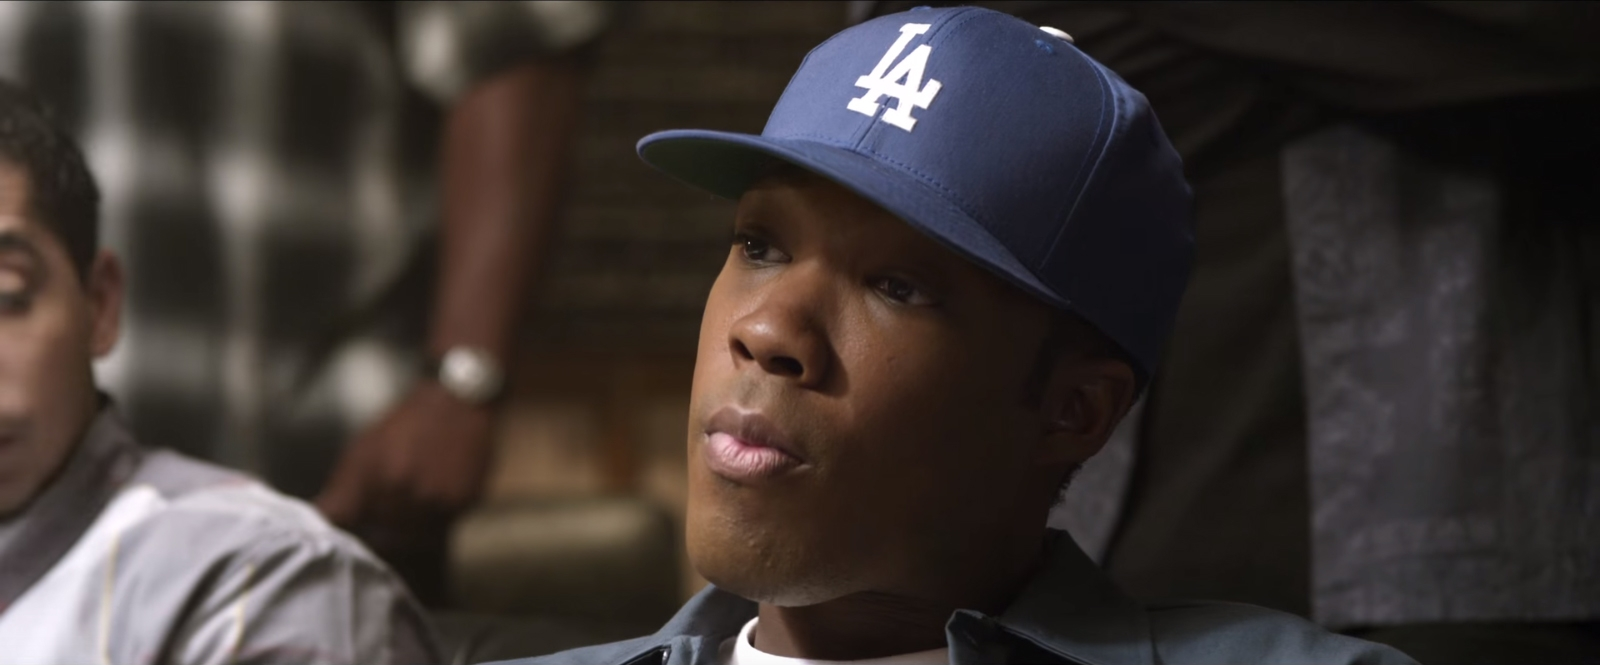 LA Dodgers Pet Dr Dre Straight Outta Compton (2015)